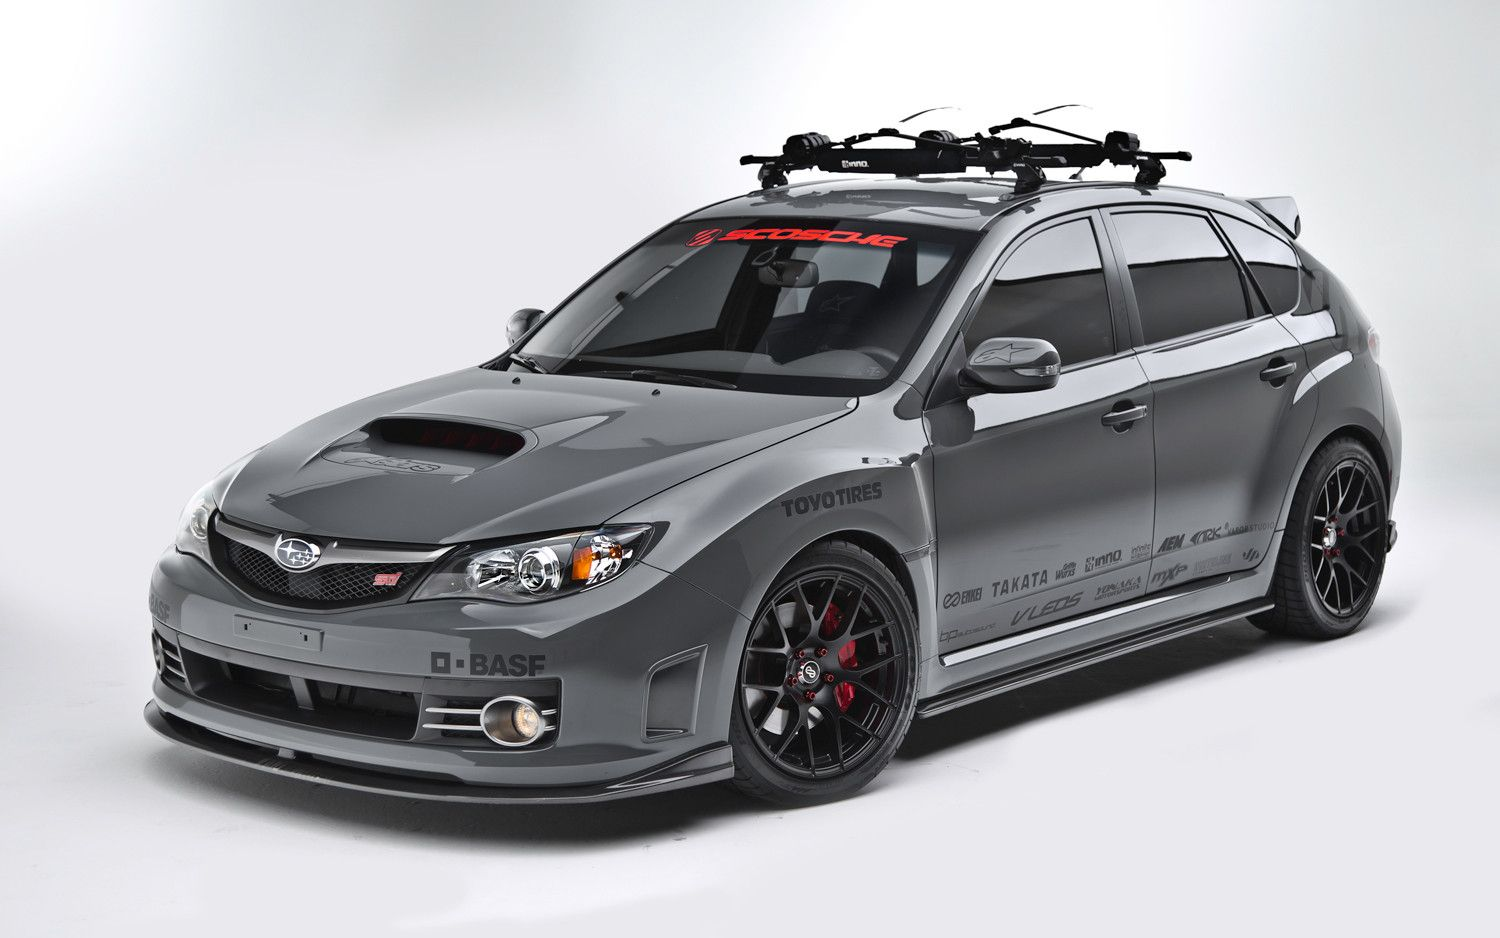 The Goods April Edition Motor Trend Subaru Wrx Subaru Wagon Subaru Cars